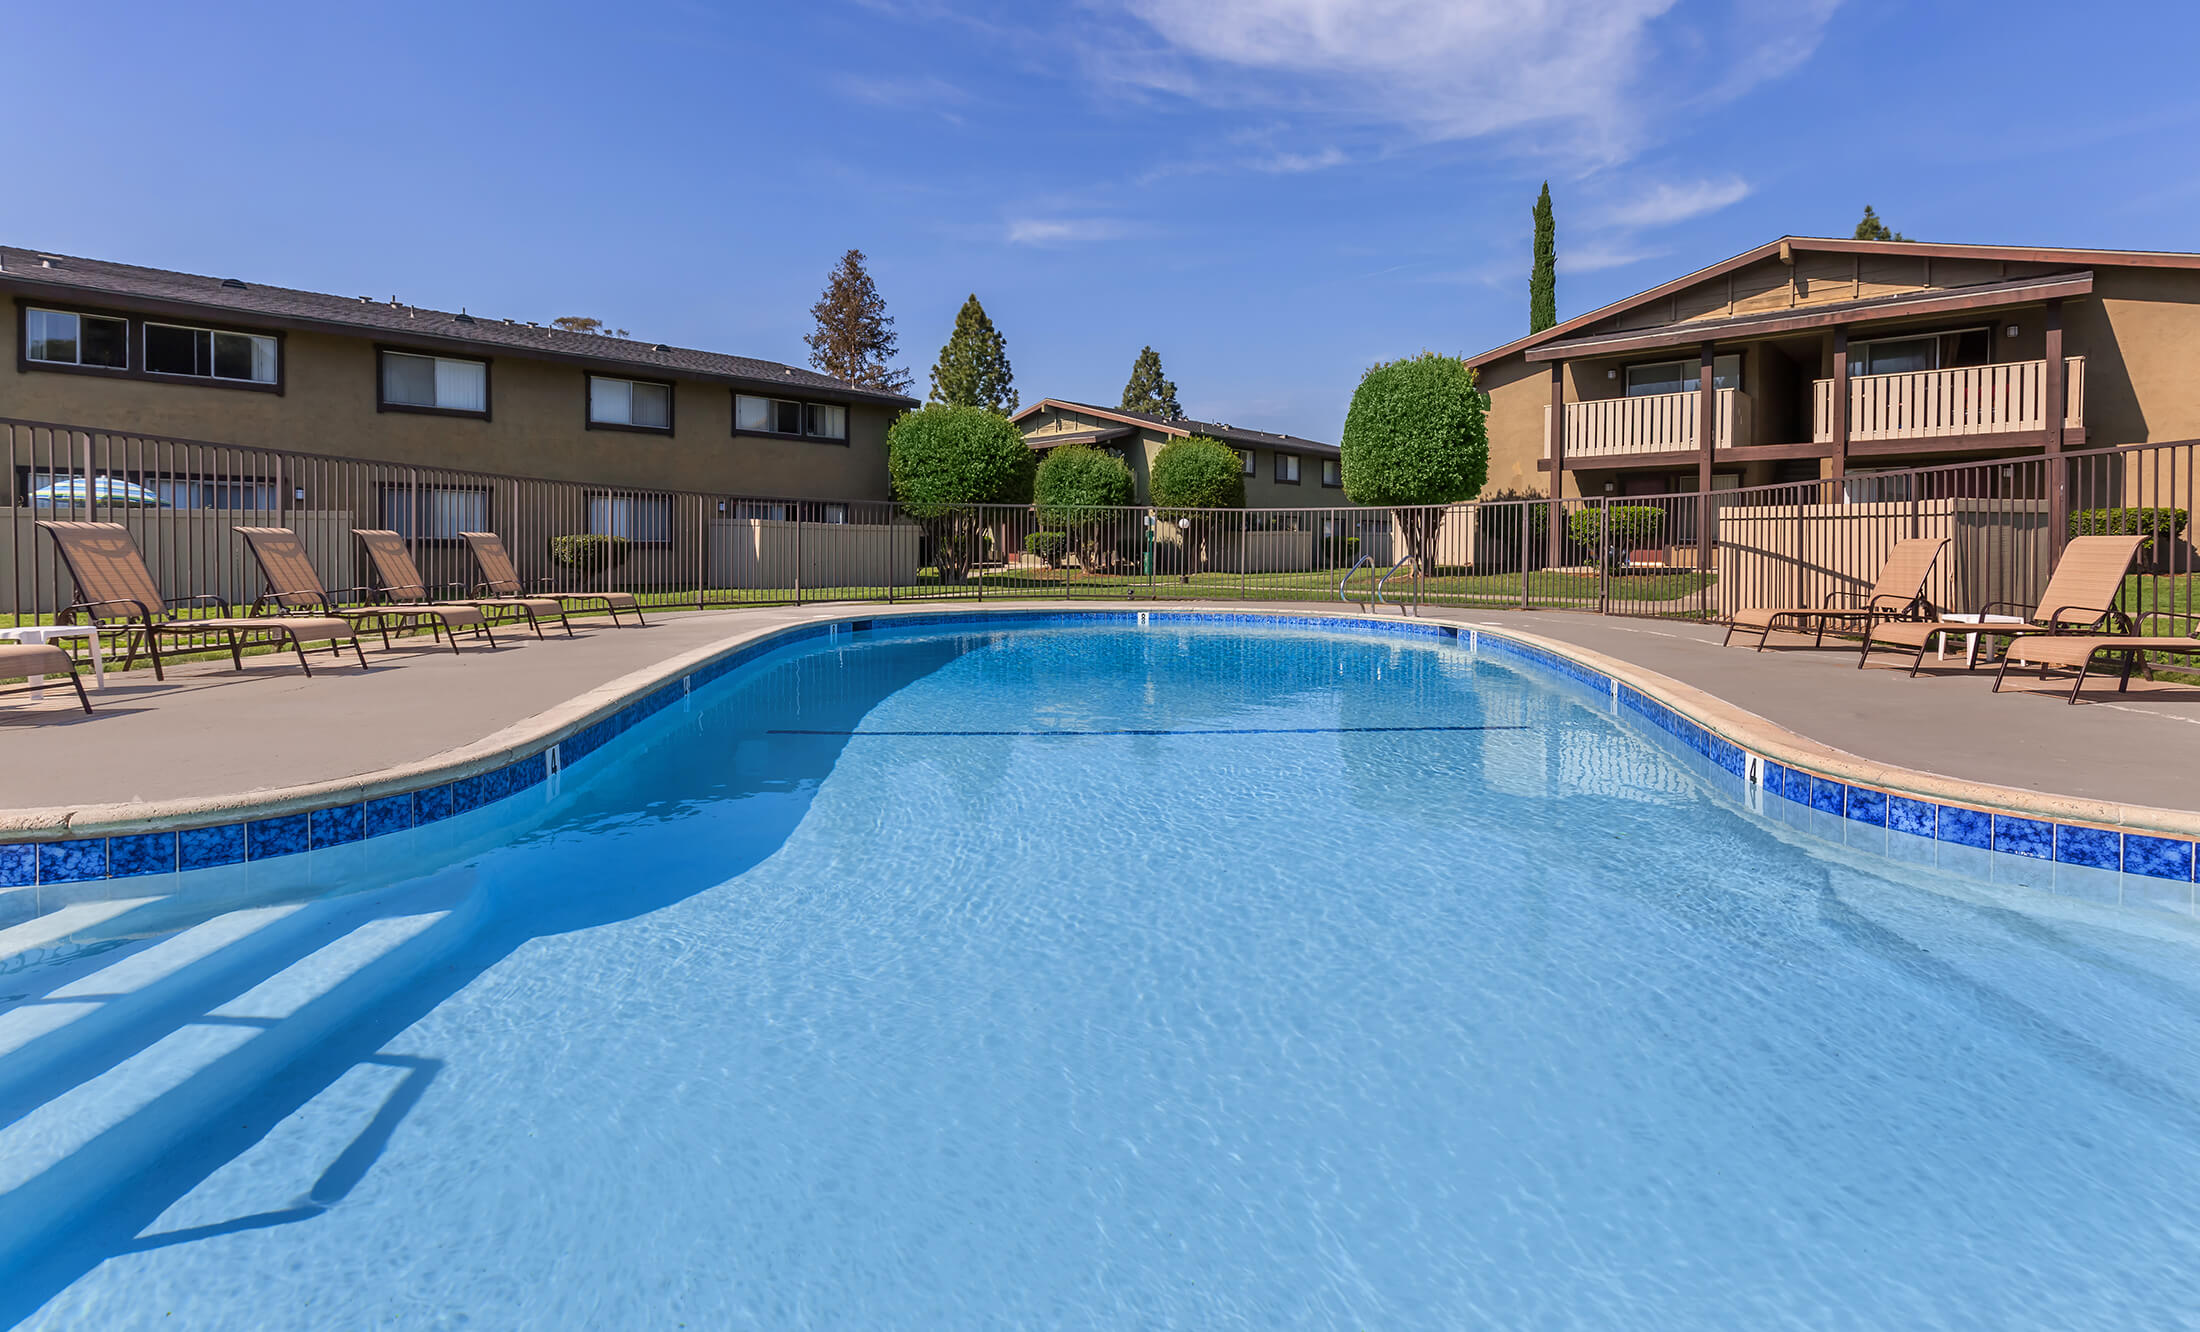 mission viejo apartments